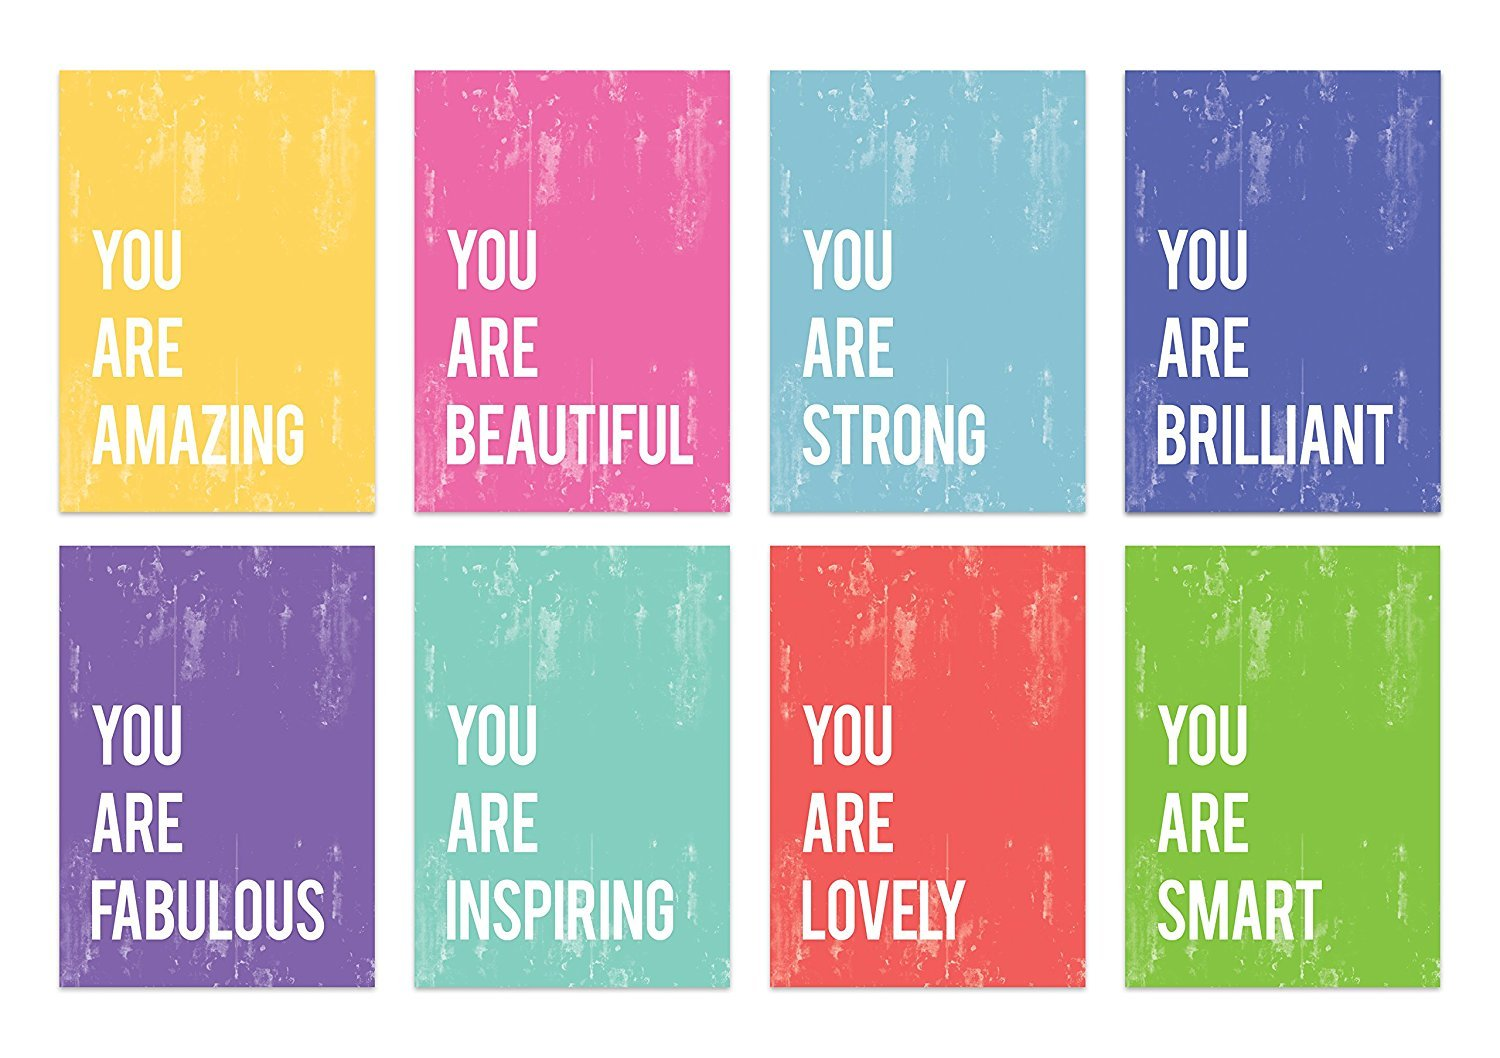 You are Mini Collection 5x7 Wall Art Prints, Typography, Nursery Decor, Kid's Wall Art Print, Kid's Room Decor, Gender Neutral, Motivational Word Art, Inspirational Artwork for Kids, Baby Room Decor